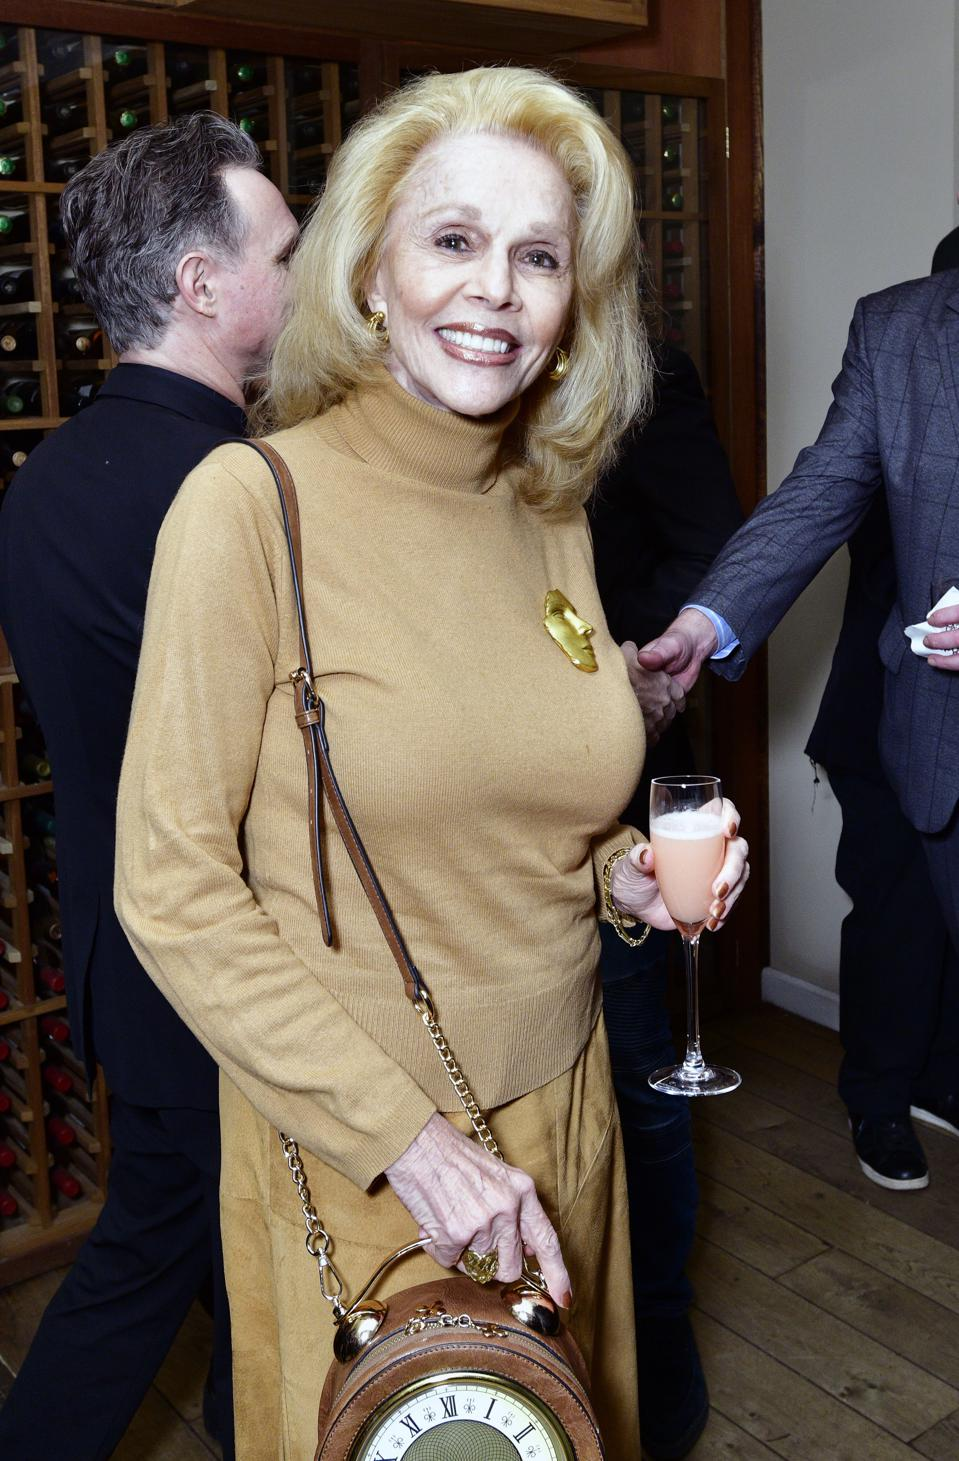 Comedic writer, Susan Silver, with her clock purse which sparked a conversation at a networking event.